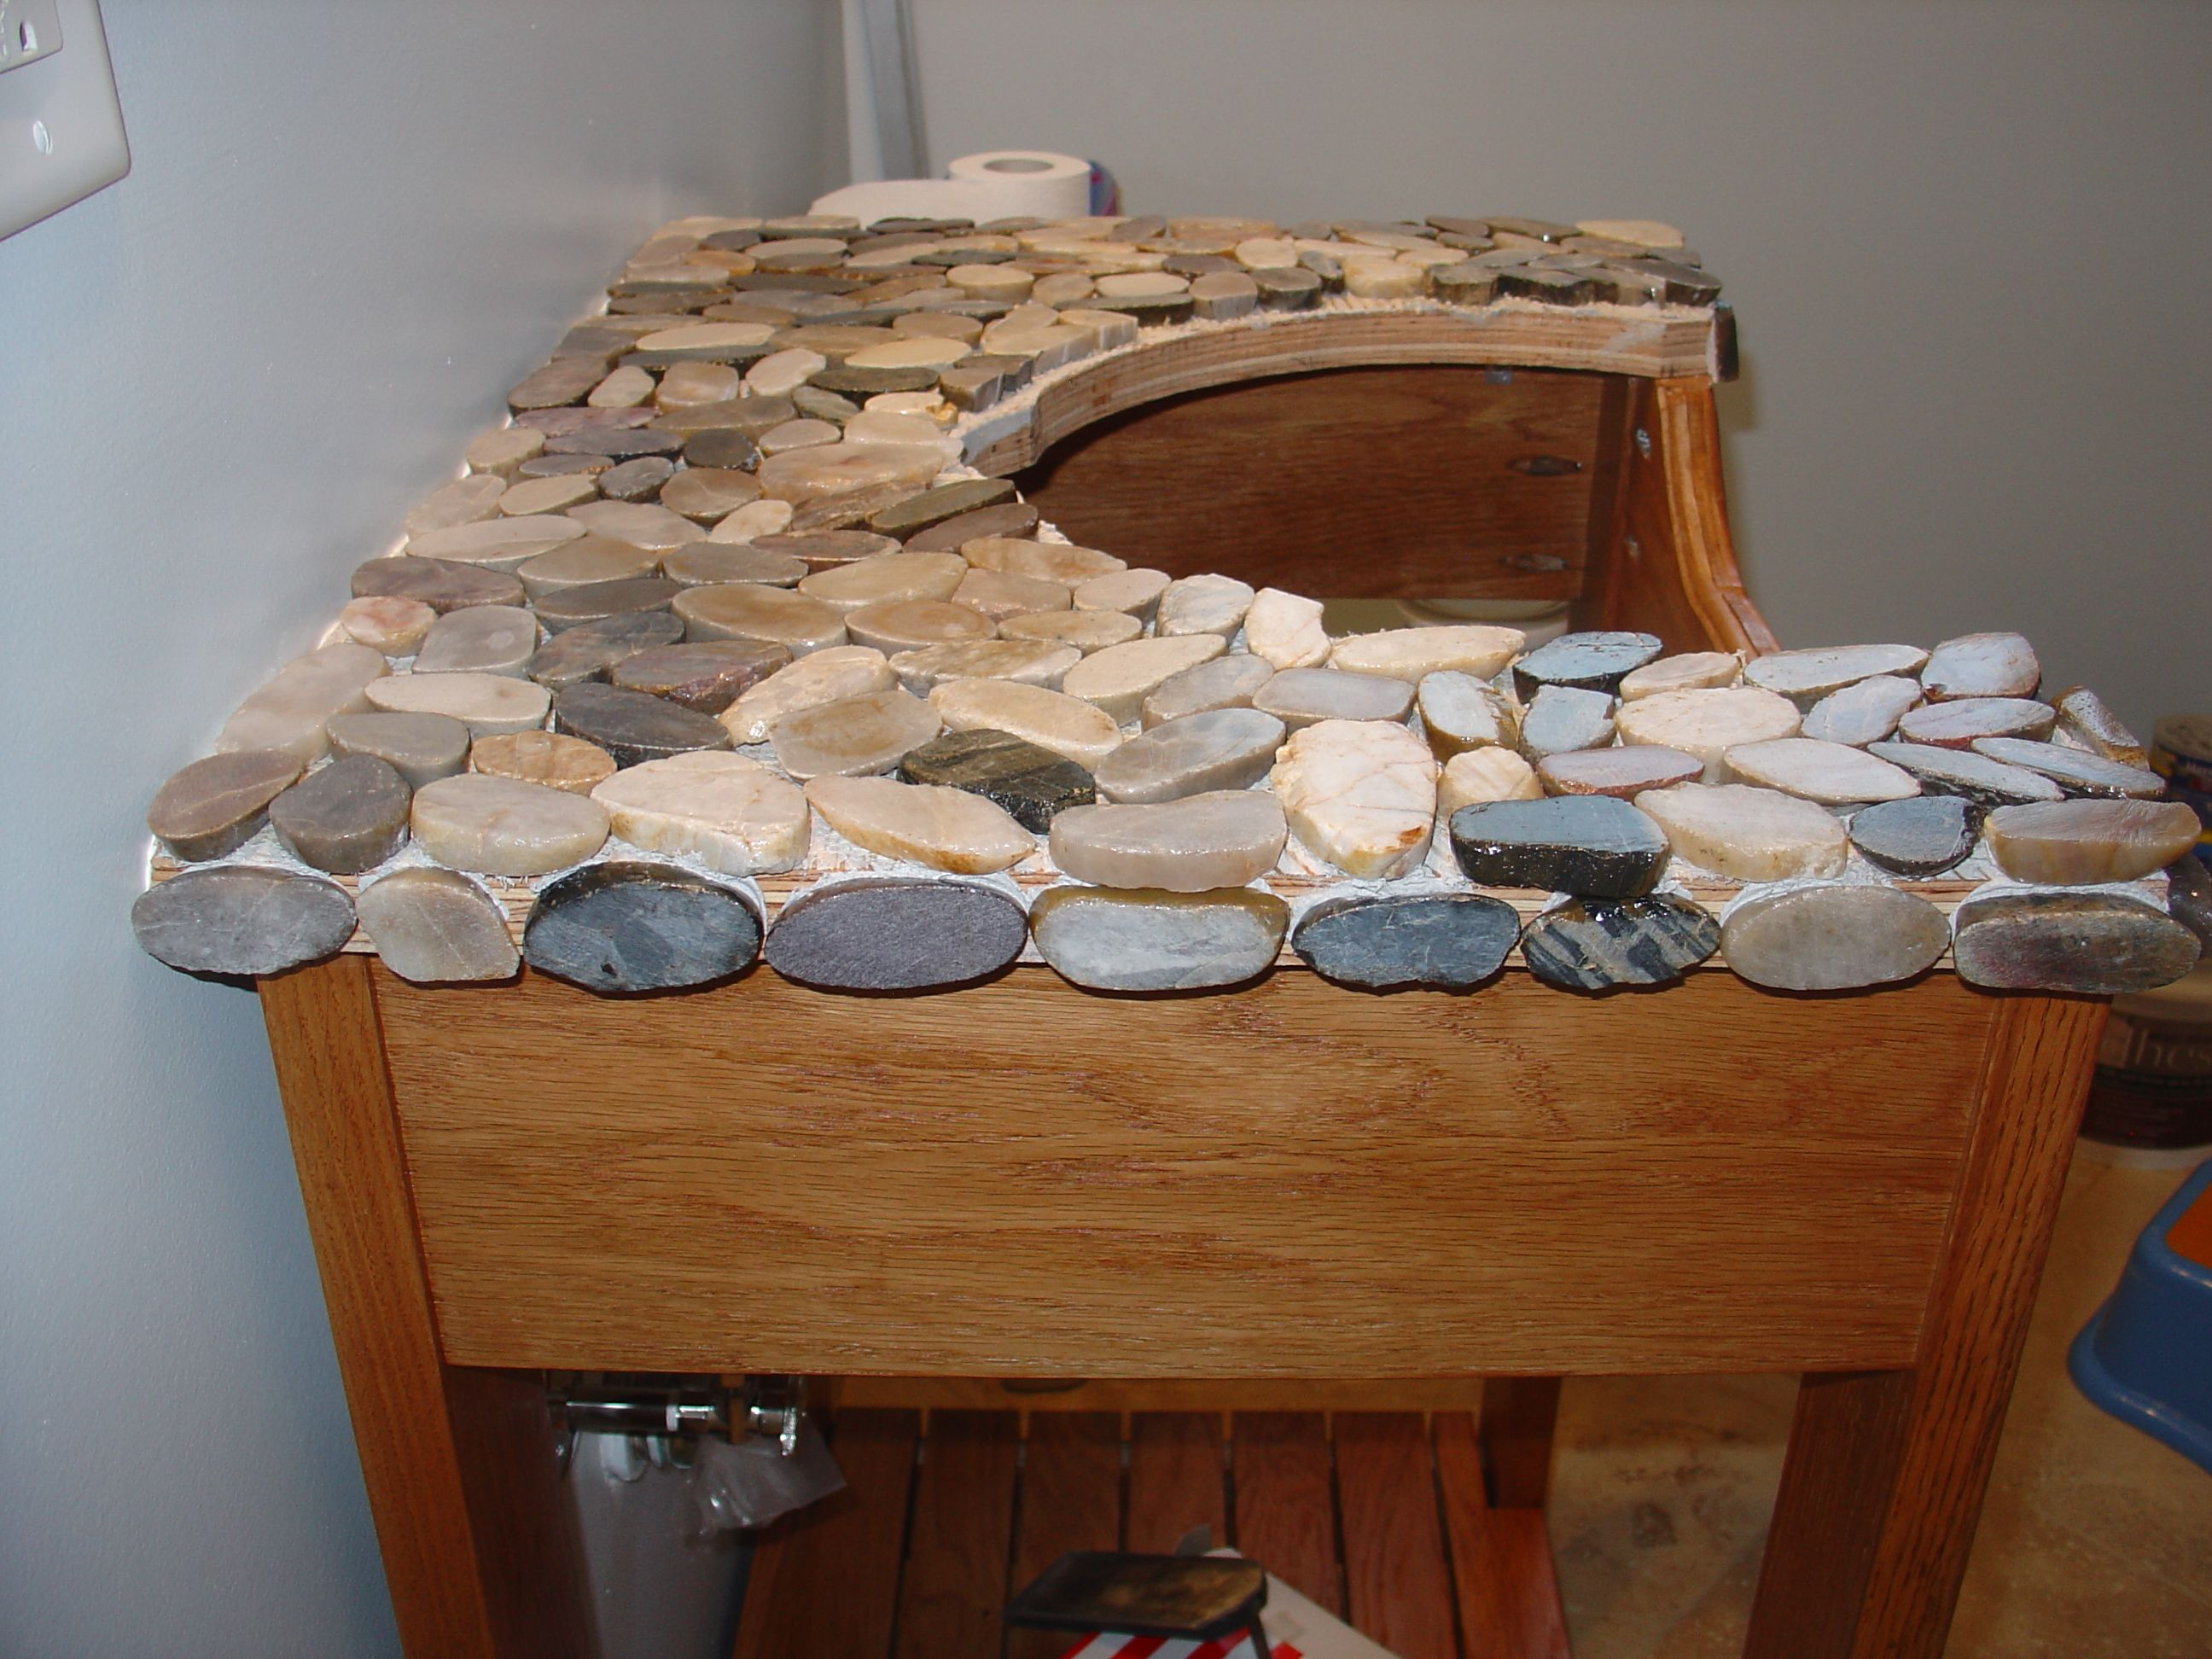 Bed U0026 Bath: Stylish Stone Vanity Top And Cabinet For Diy Bathroom .